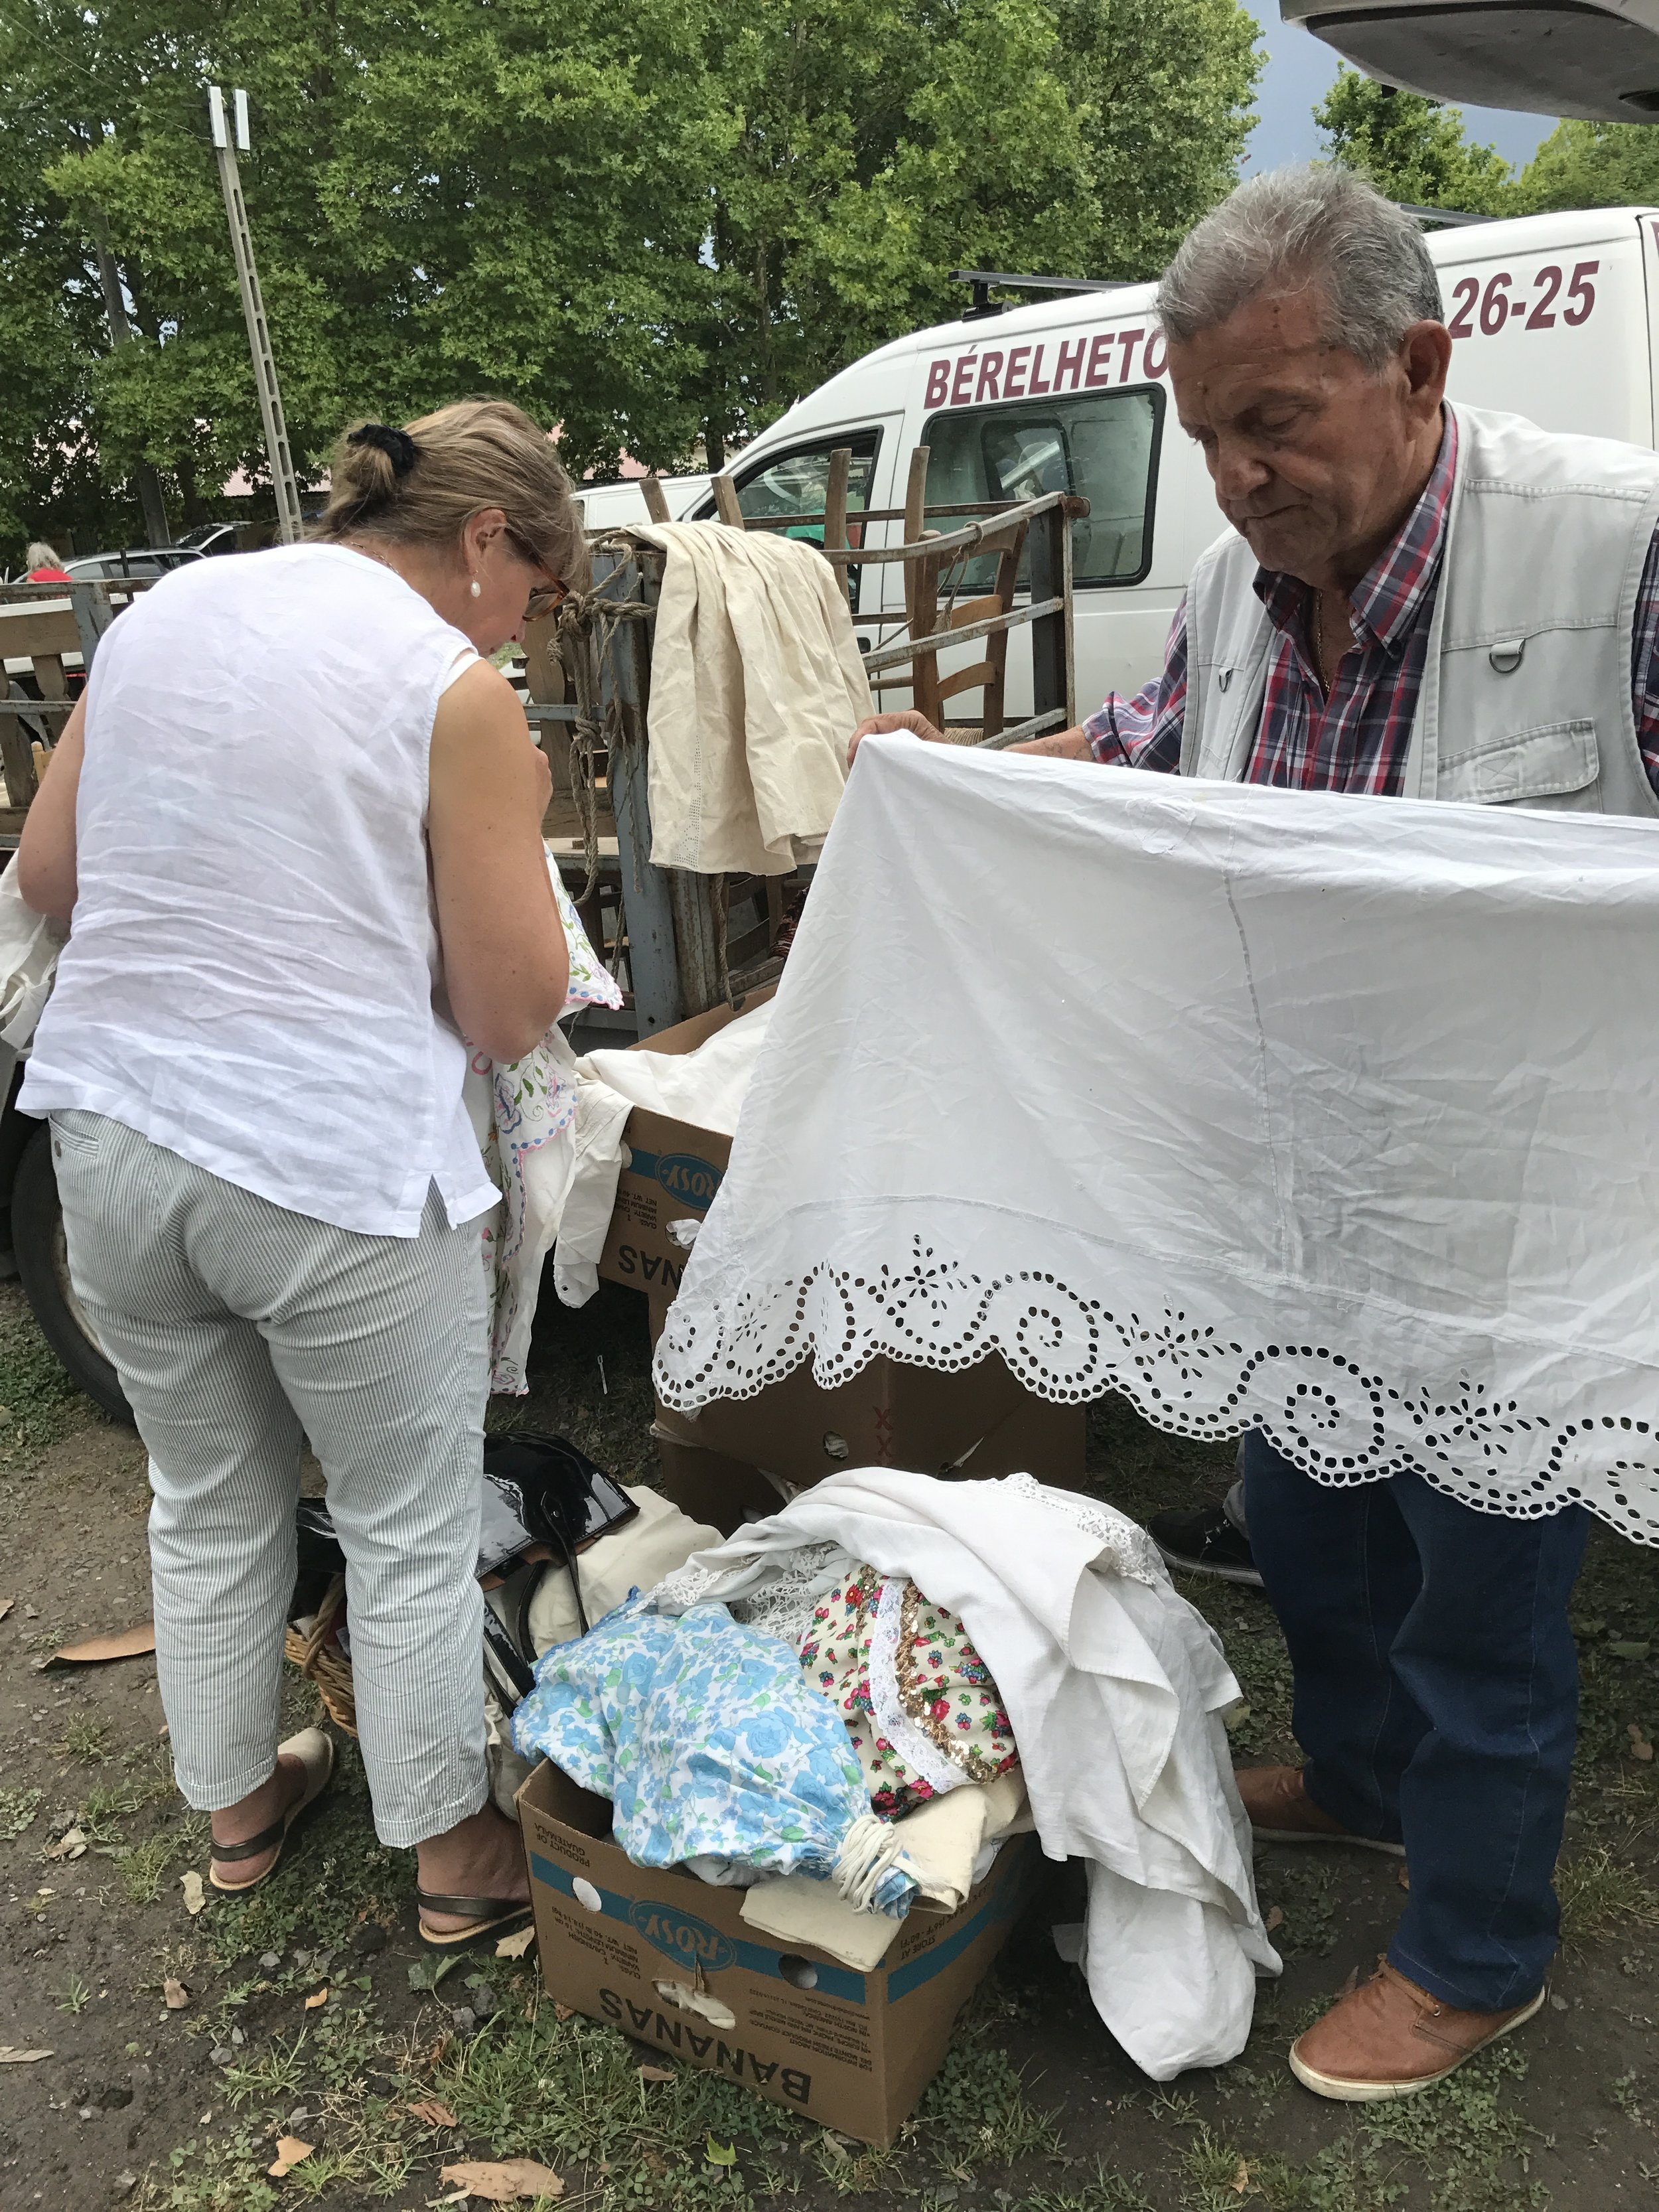 Sorting through mounds of old linen